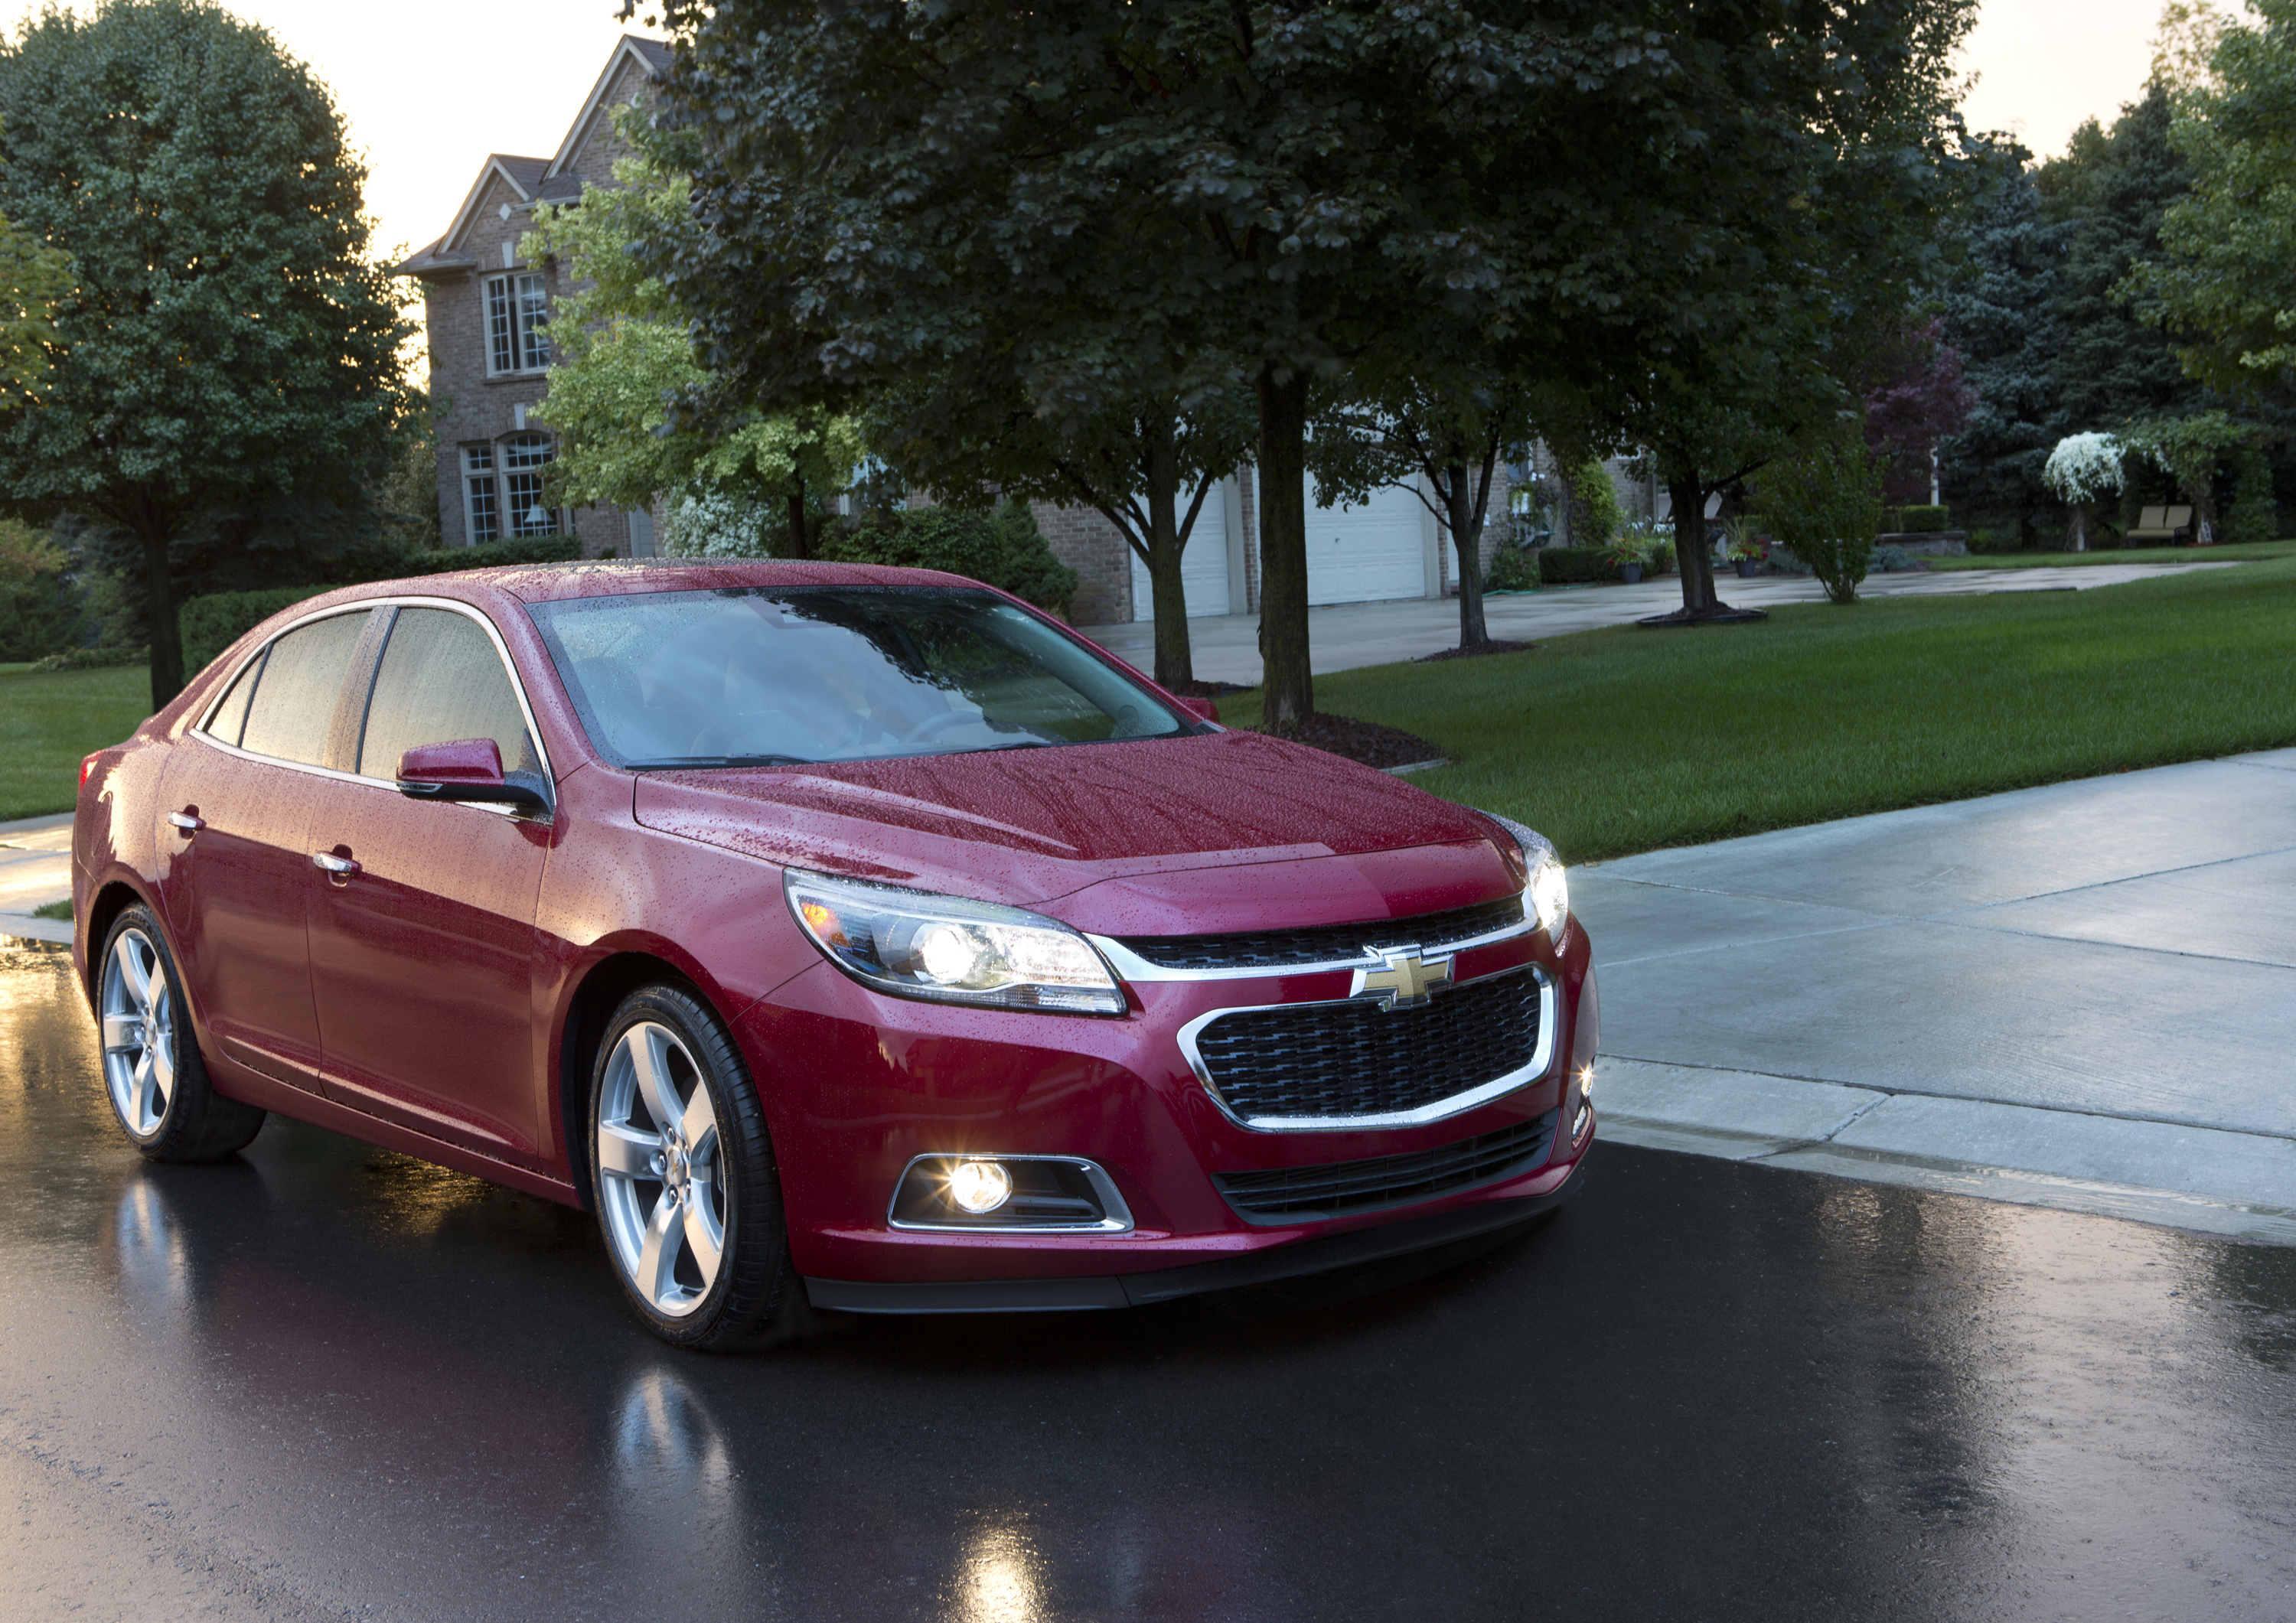 2014 Chevrolet Malibu 010 gm announces five safety recalls  at readyjetset.co